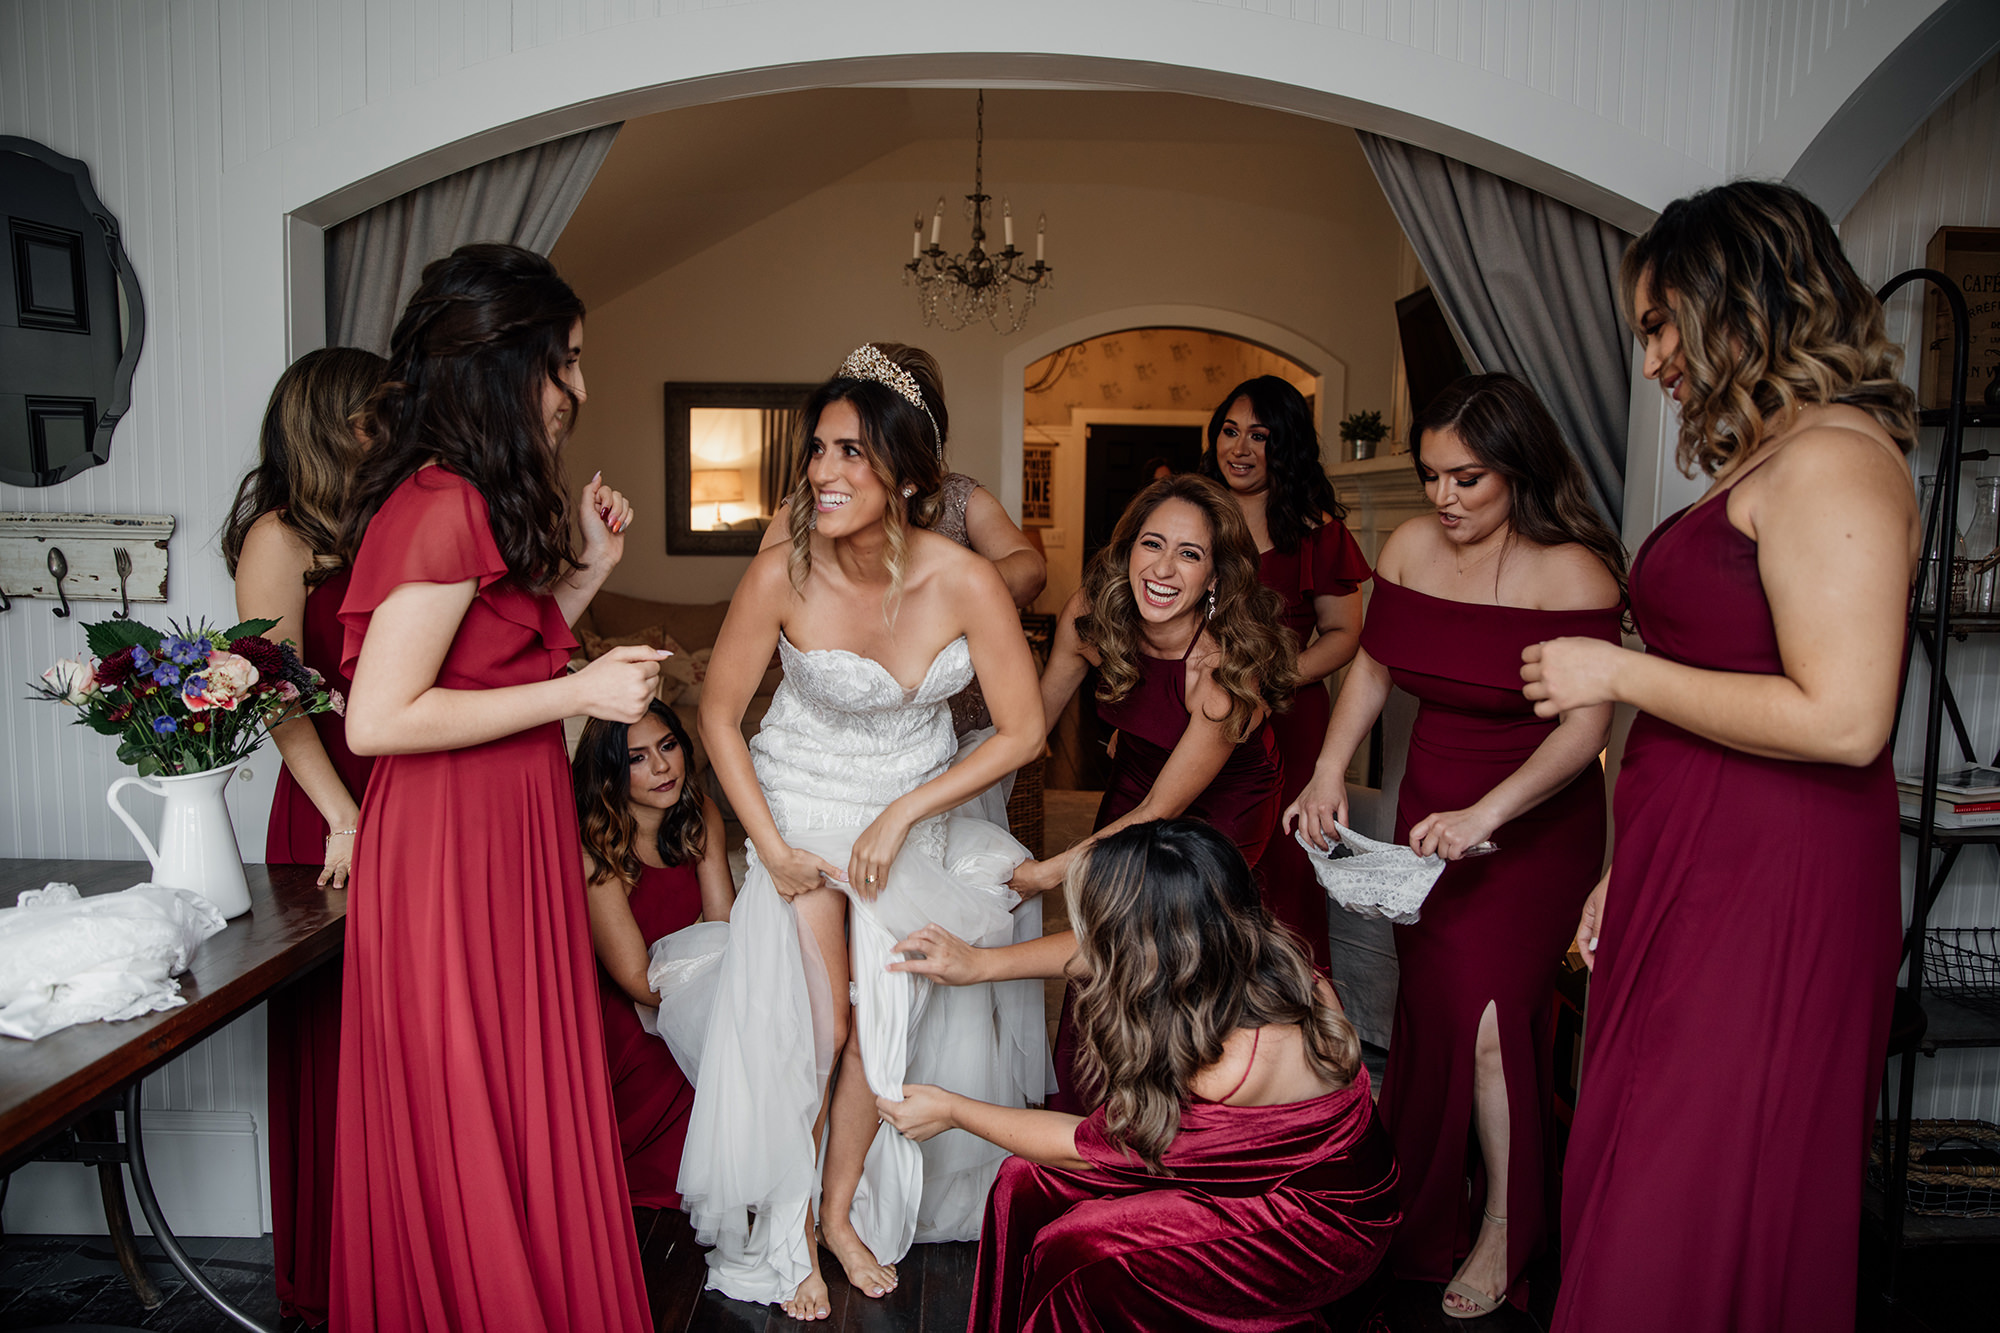 Bridesmaids helping bride with dress at St Helena wedding.